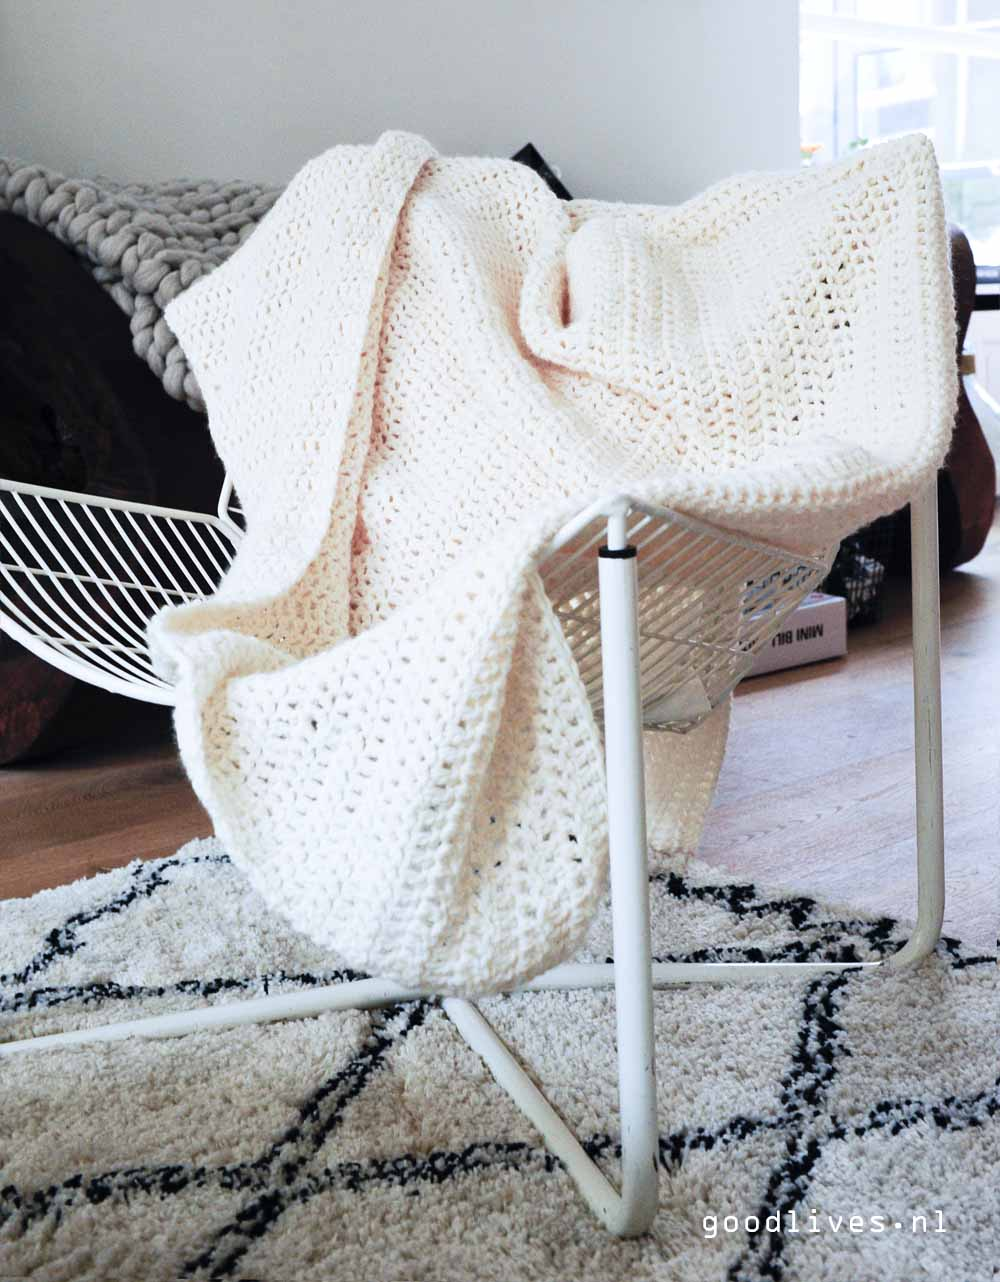 Cream Colored crocheted plaid over jarpen chair, free pattern on Goodlives.nl